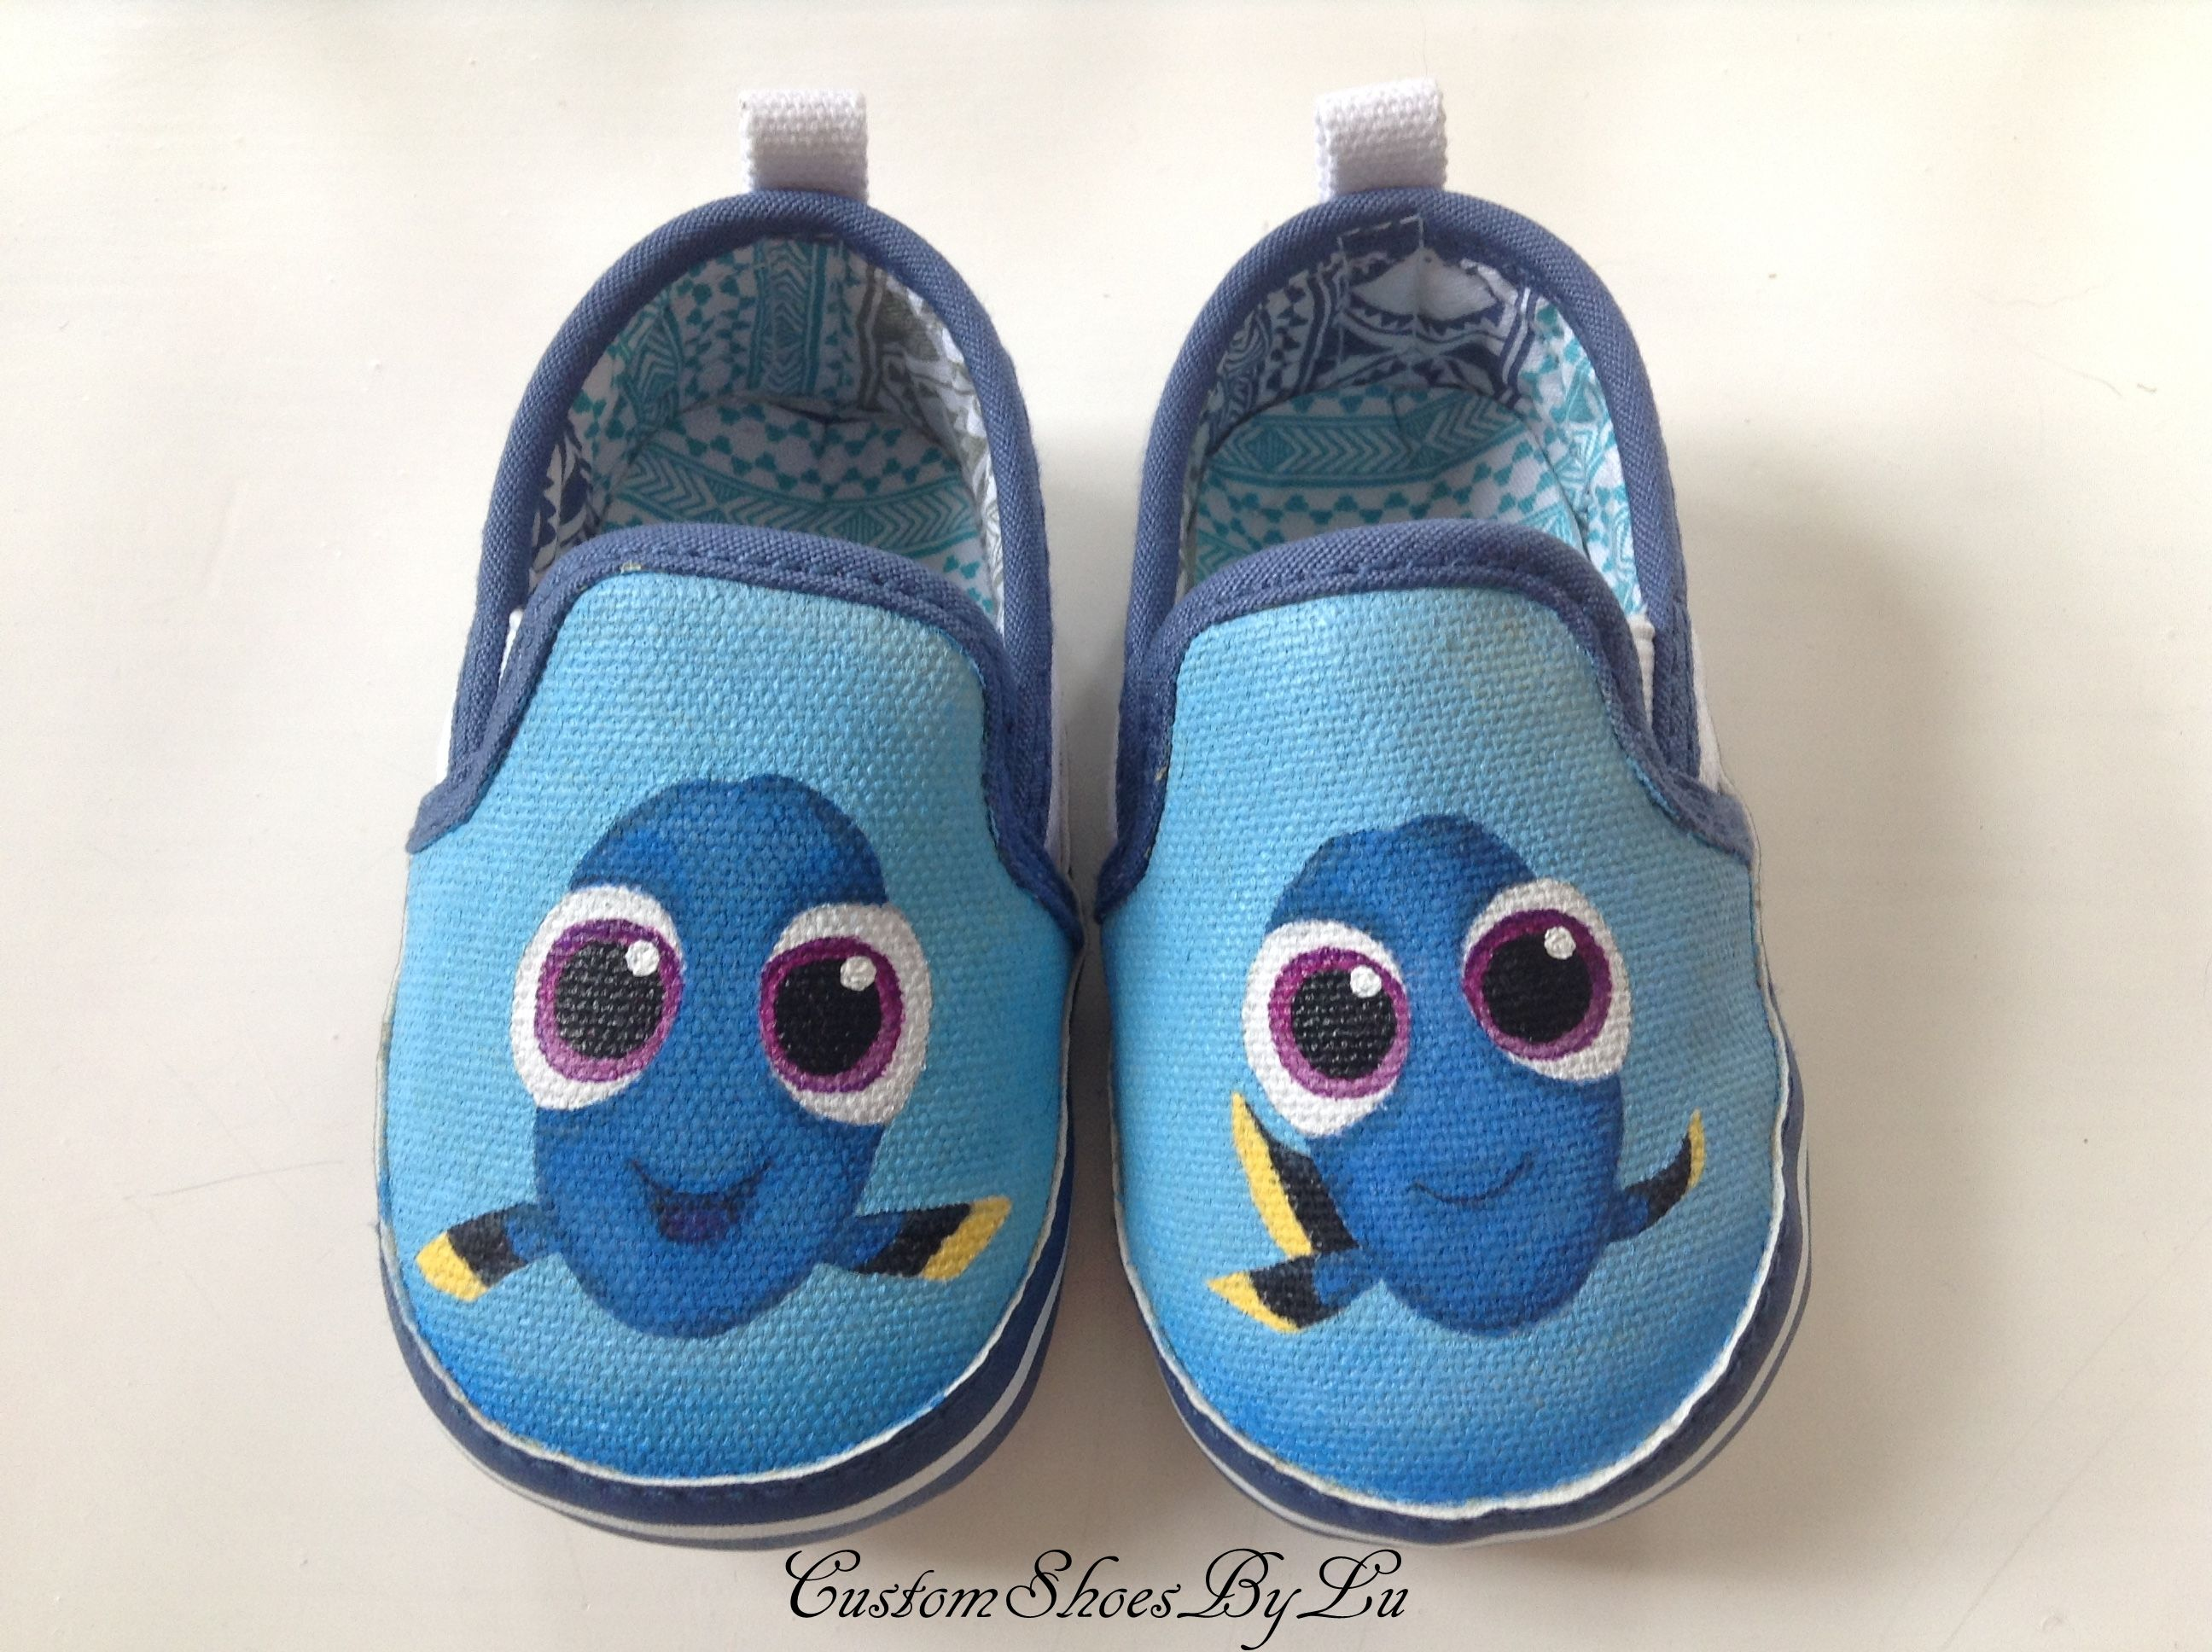 Baby shoes I've ever painted